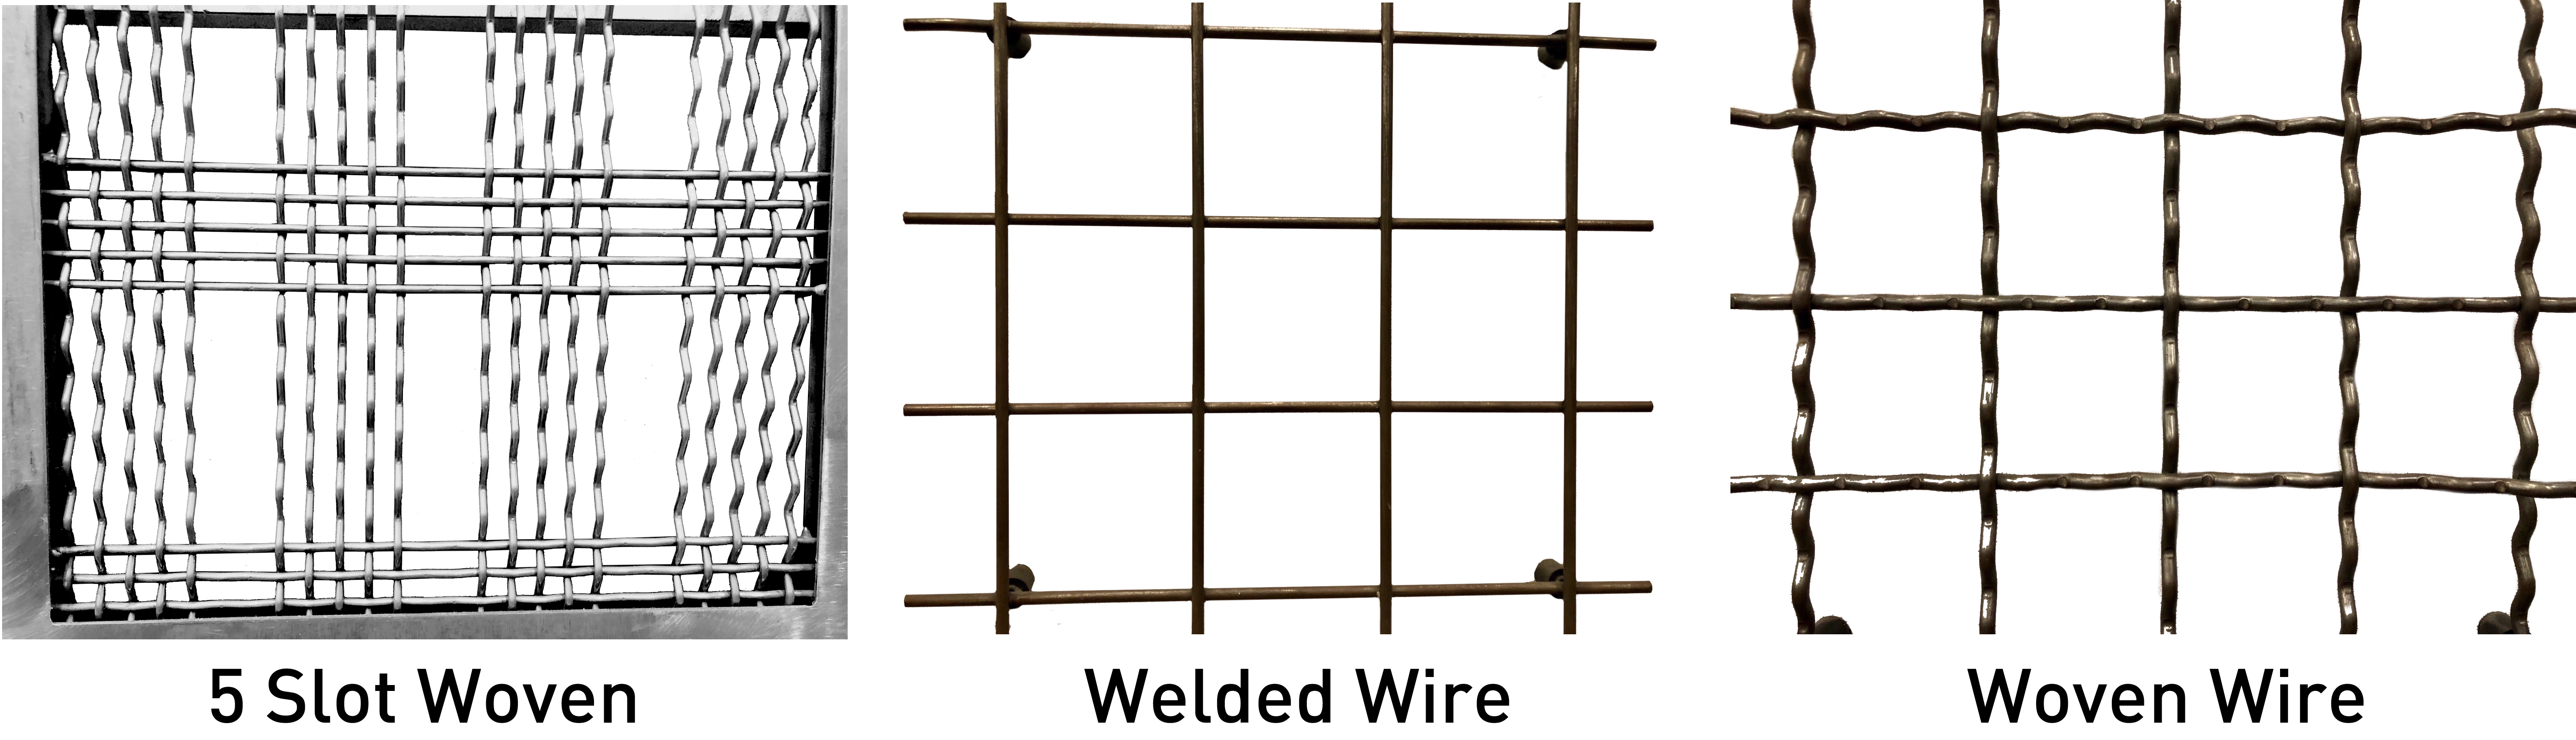 Woven Wire Mesh | Stainless Steel Mesh | Welded Wire Mesh